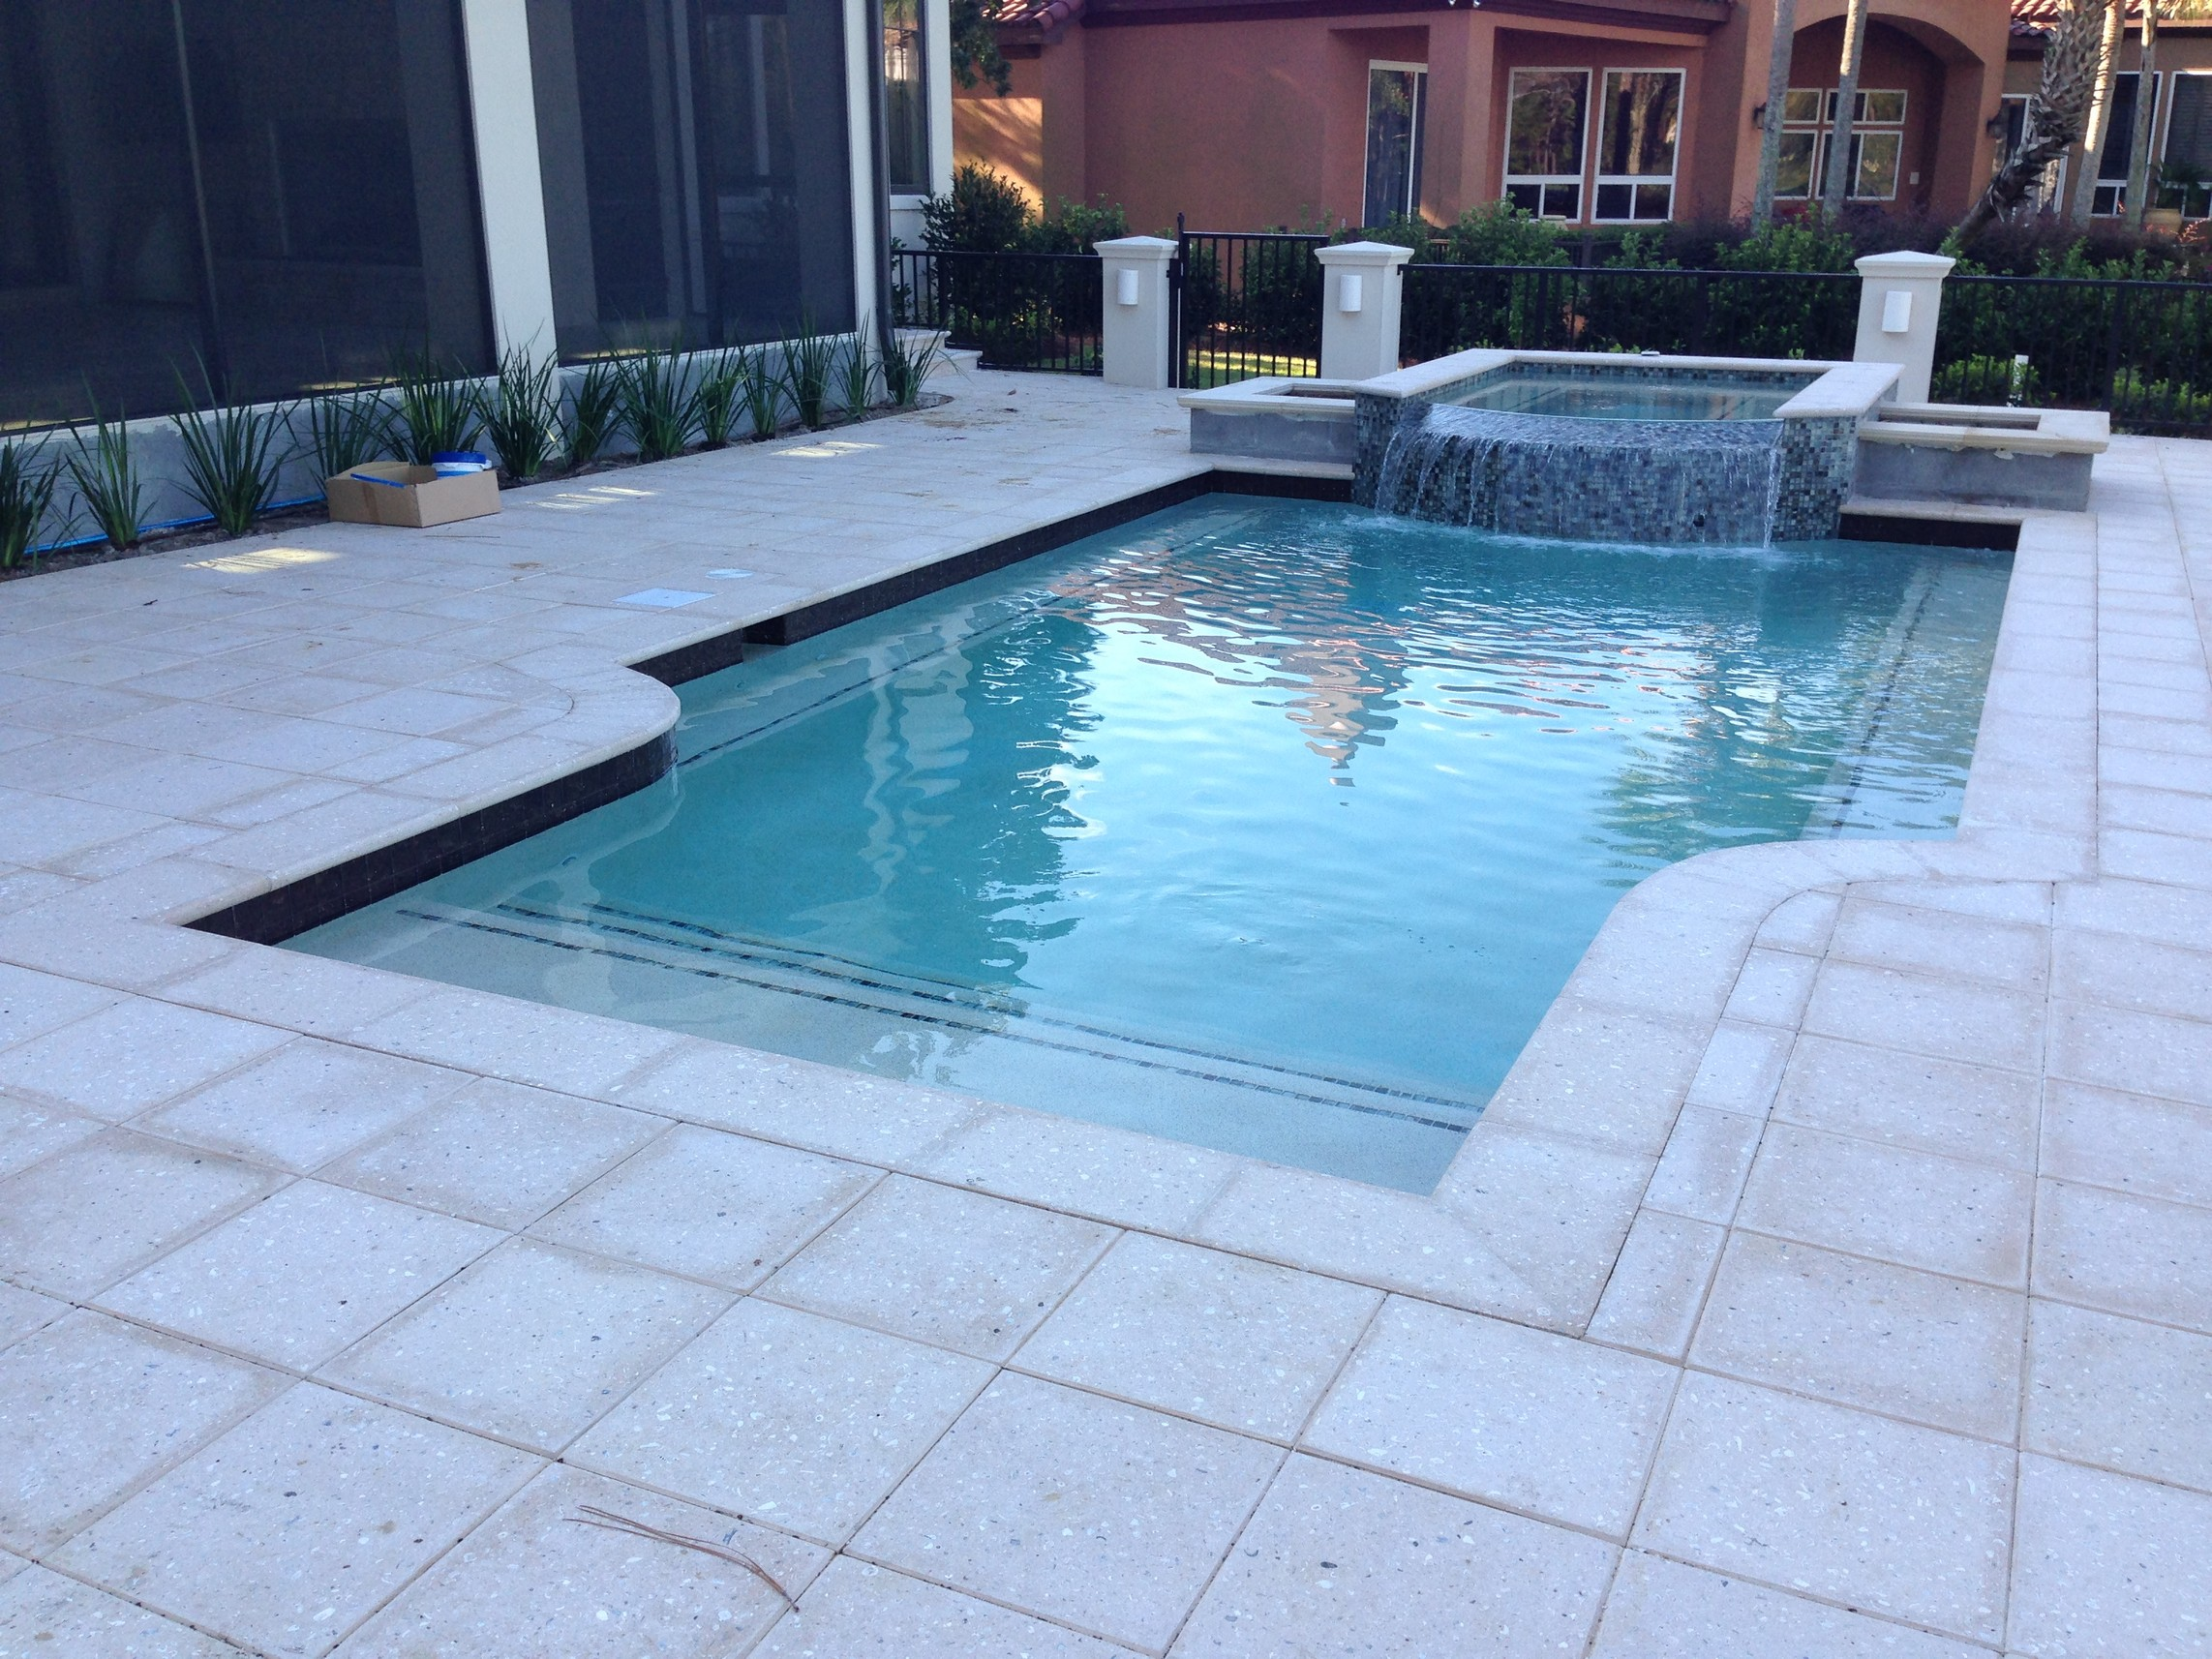 Paver Pool And Spa Decks Delta Pavers Pavers Retaining Walls